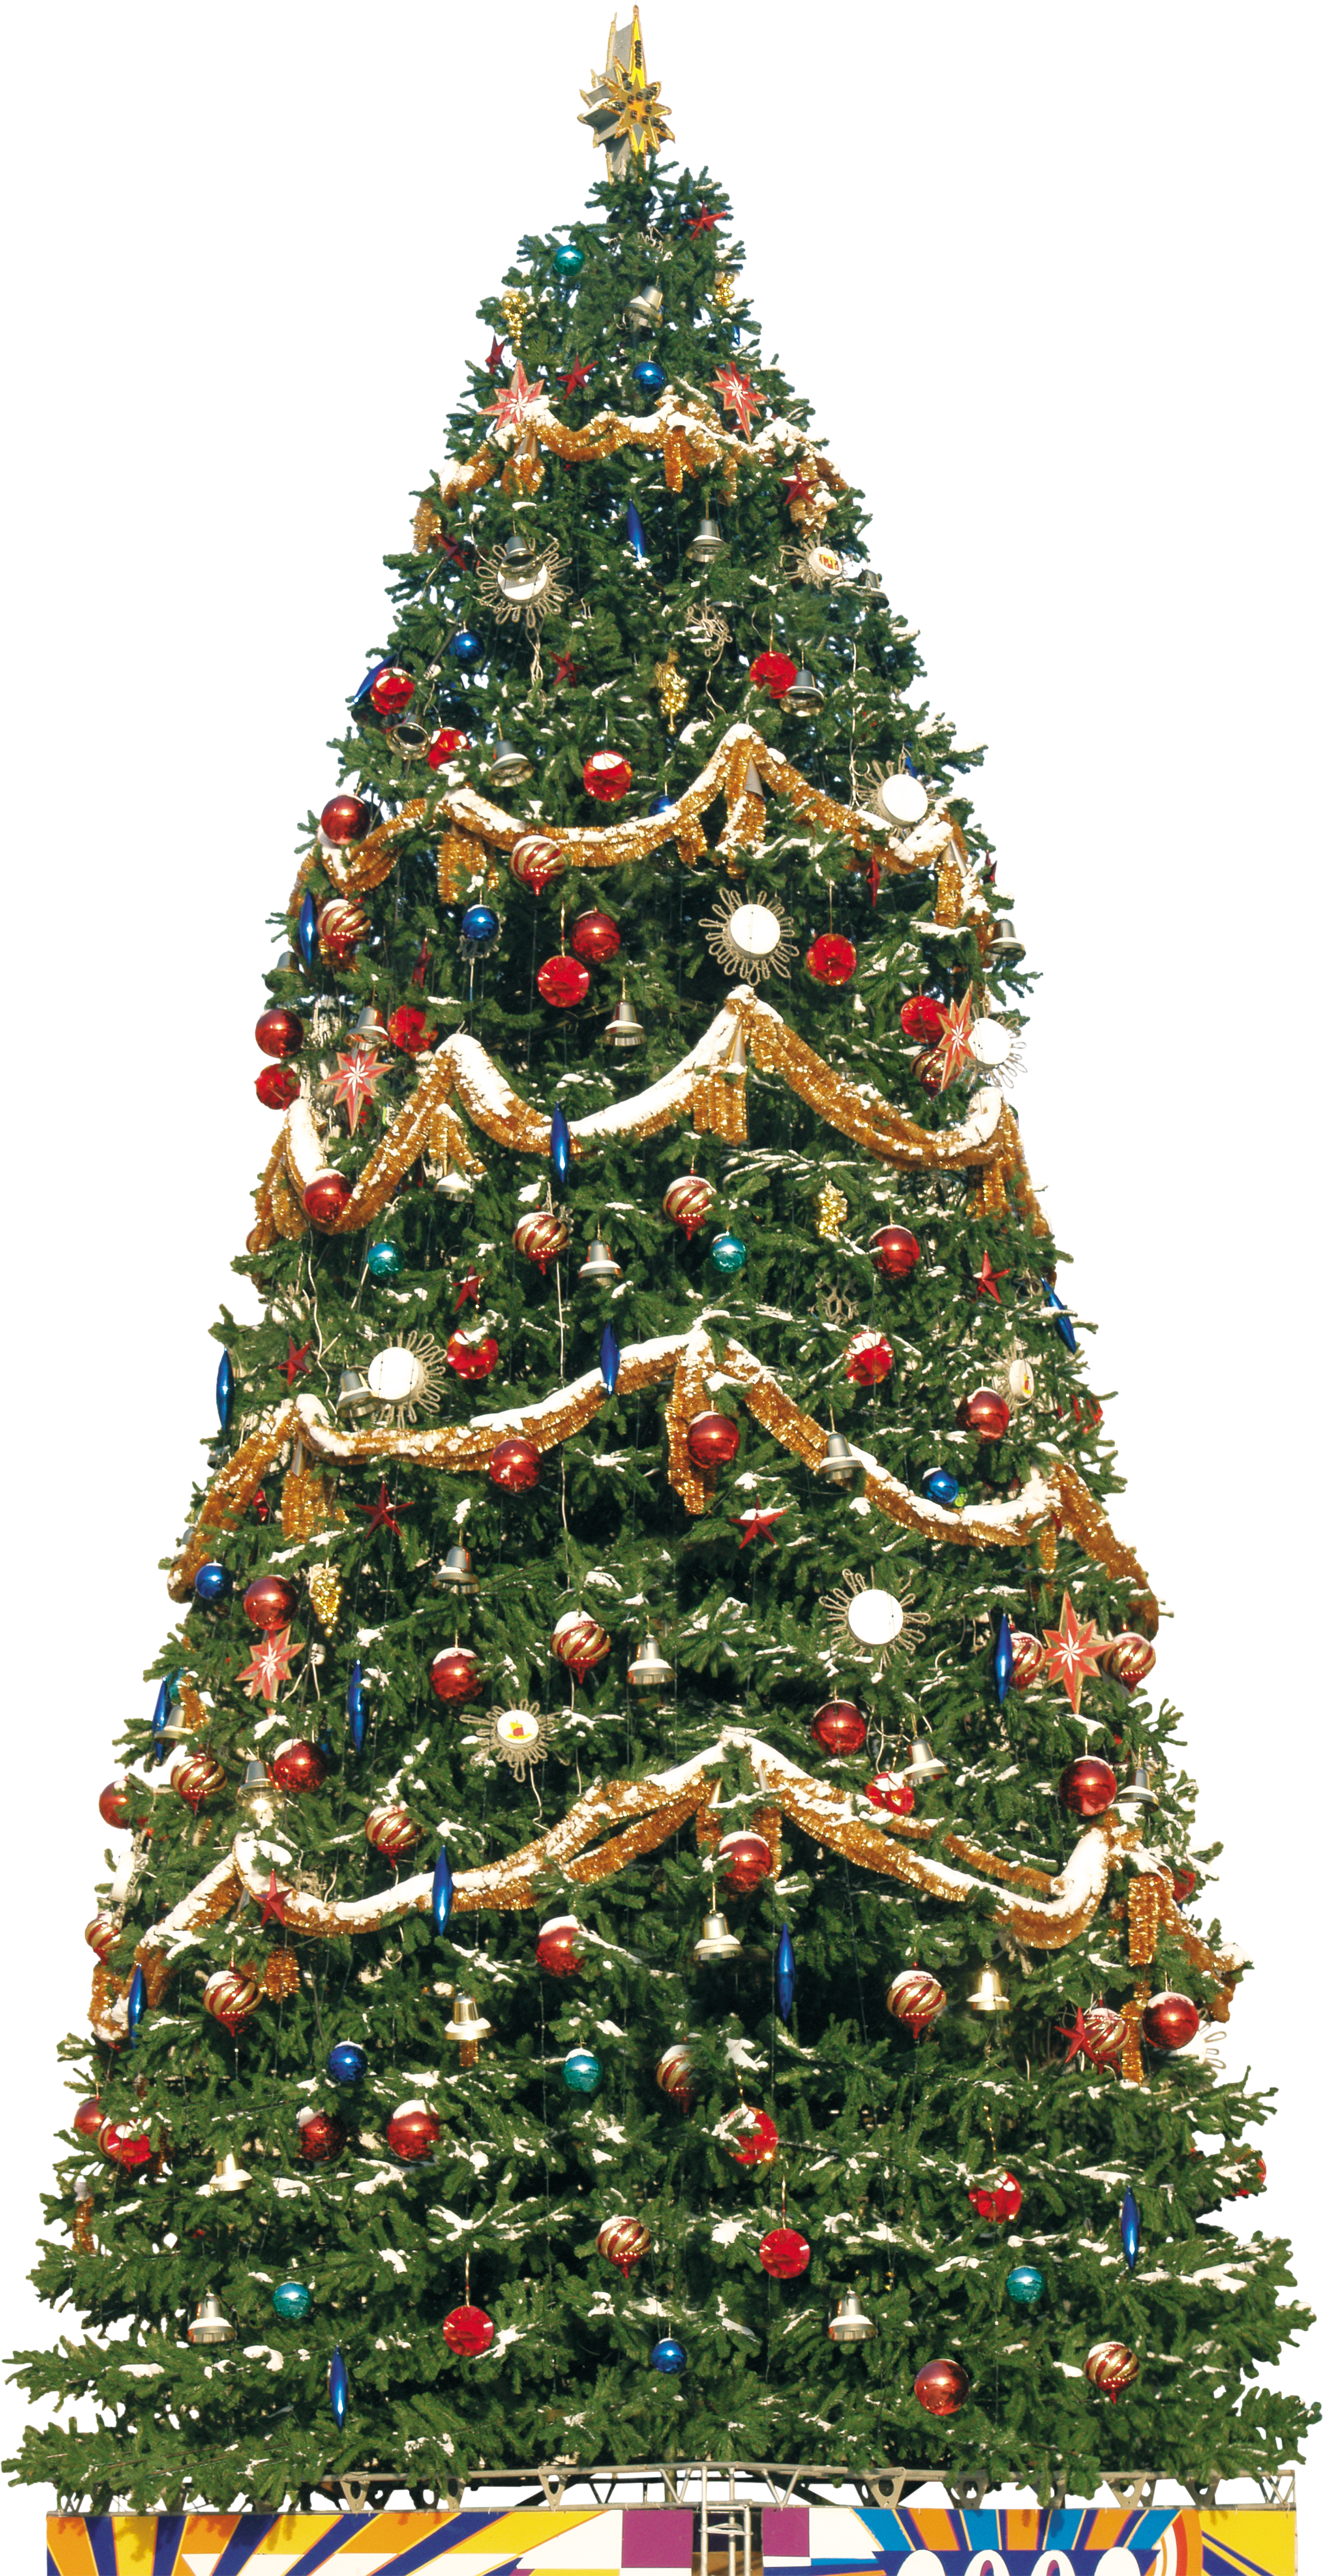 Christmas Tree PNG Image - PurePNG | Free transparent CC0 ...